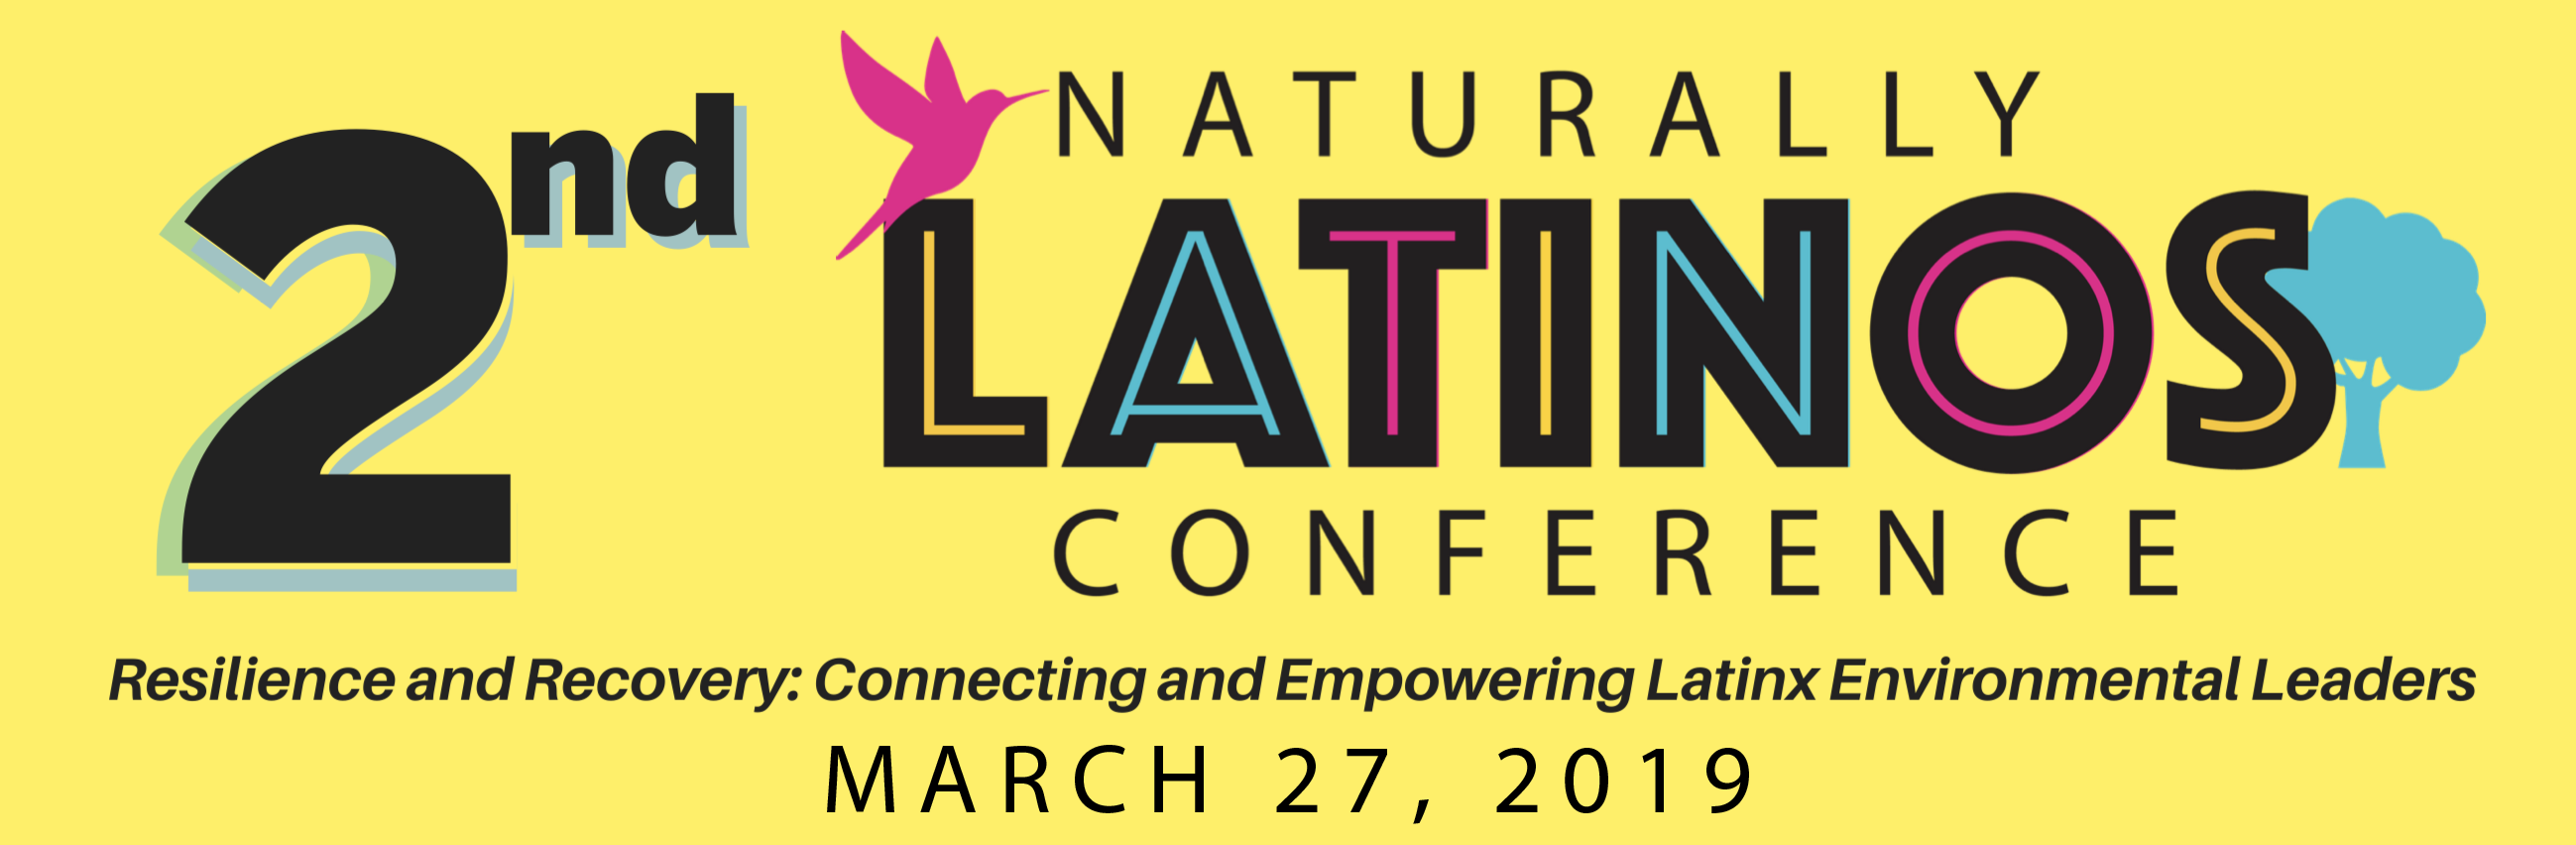 Flyer for Naturally Latinos